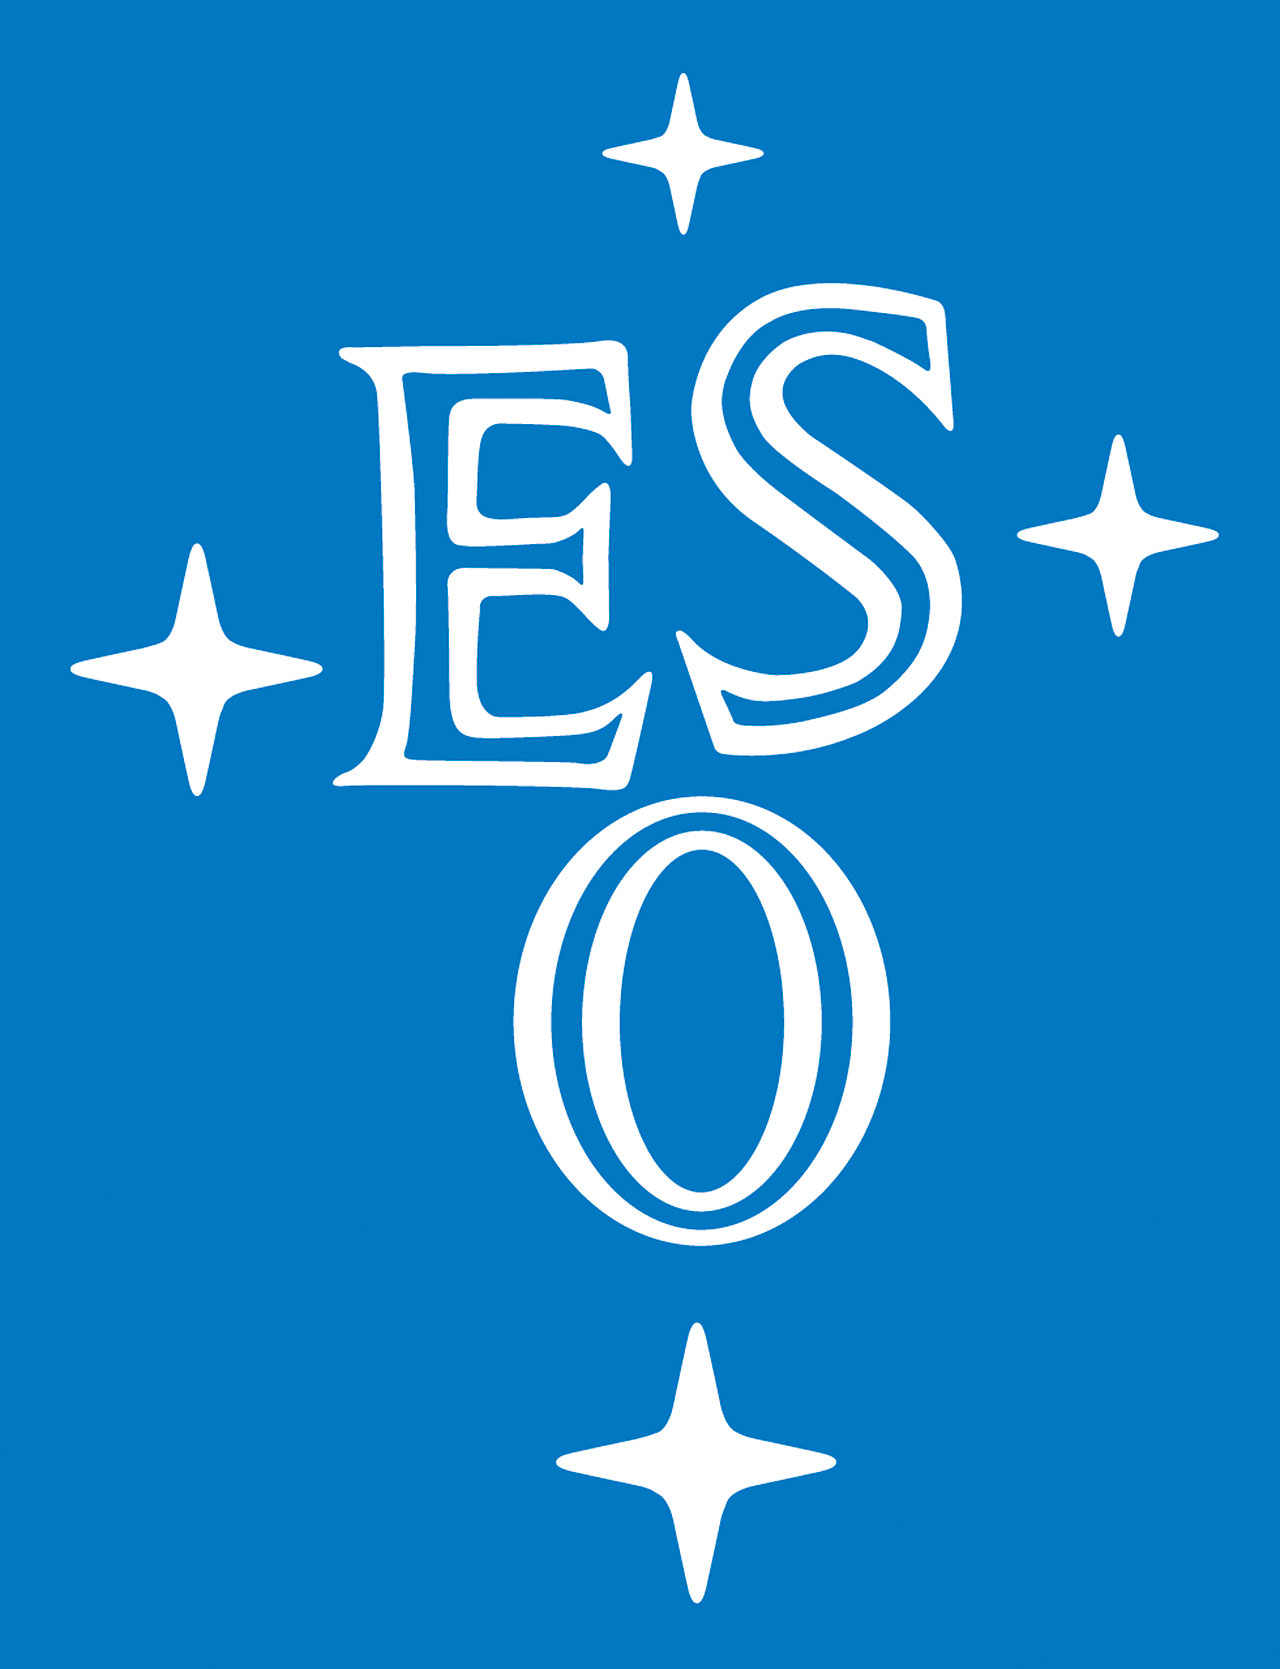 ESO logo blue  P Logo With Blue Background